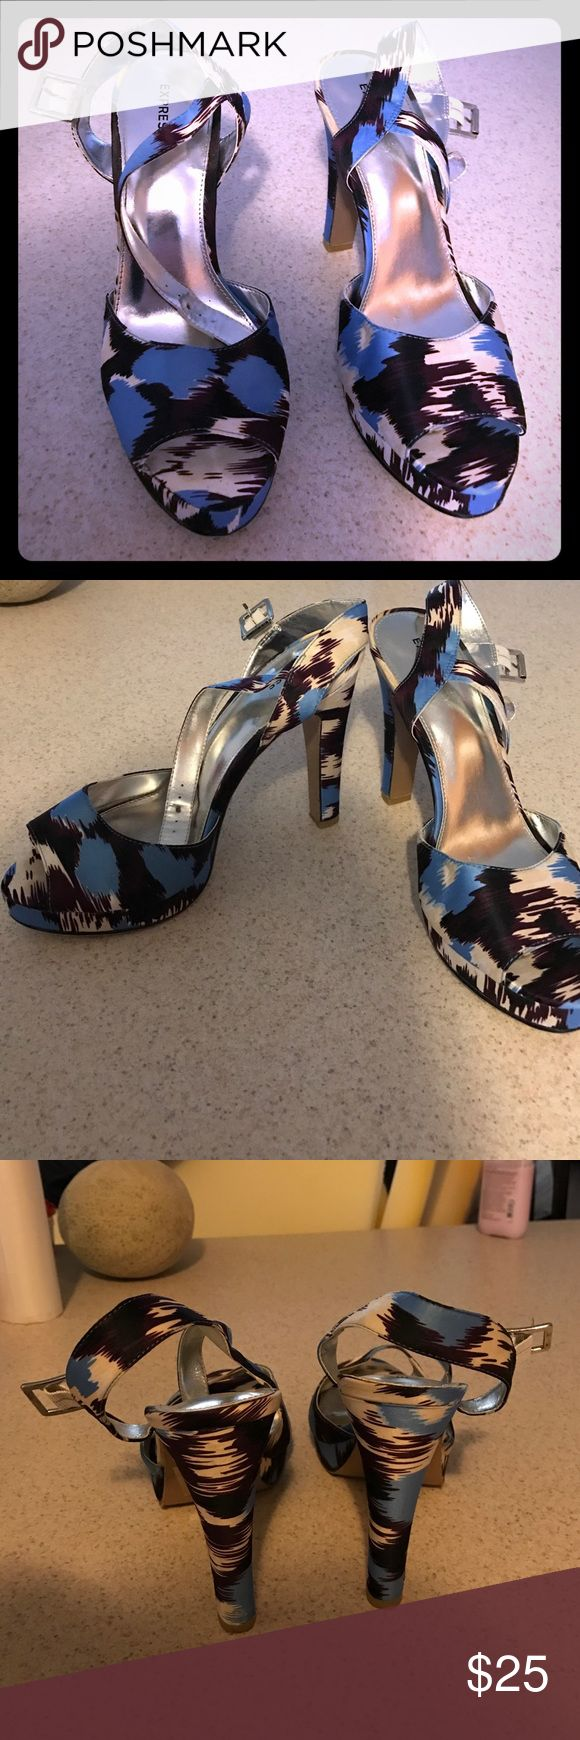 Express shoes Only worn twice! Beautiful shoes! Express Shoes Heels